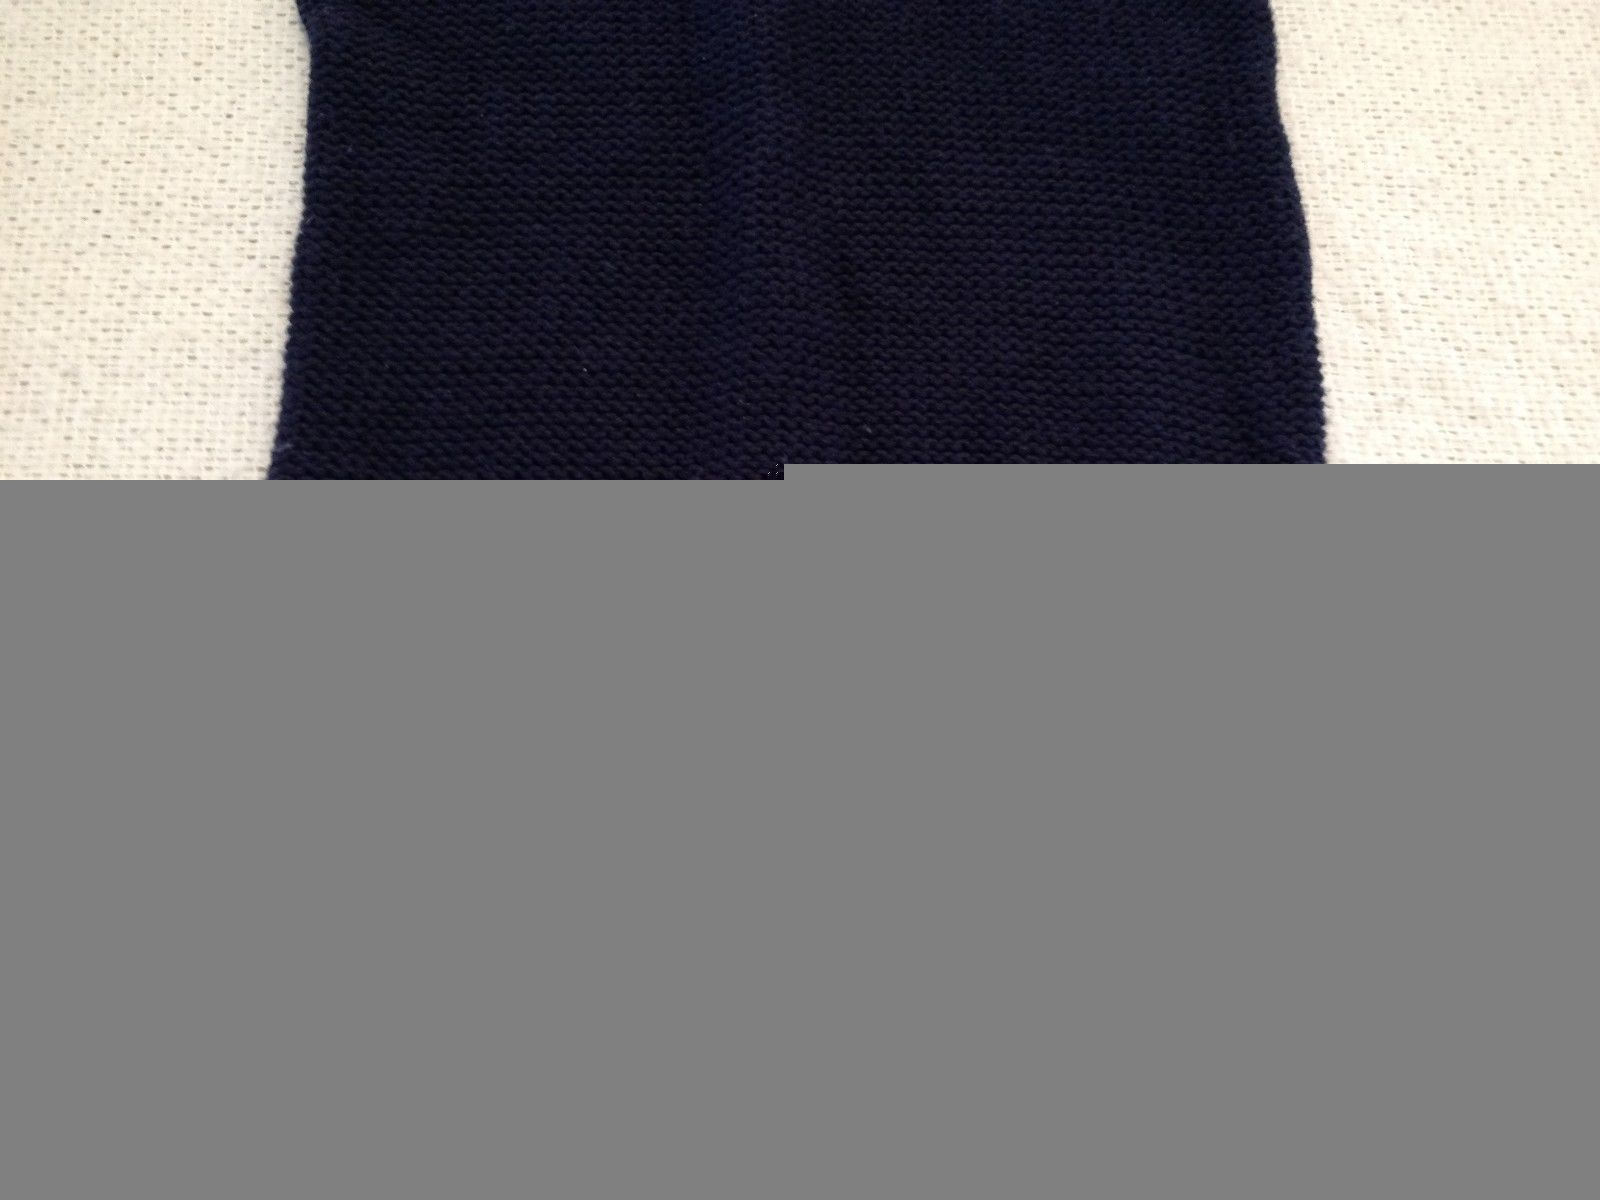 The Limited Short Sleeve Sweater Navy/Gray Women's XS image 4